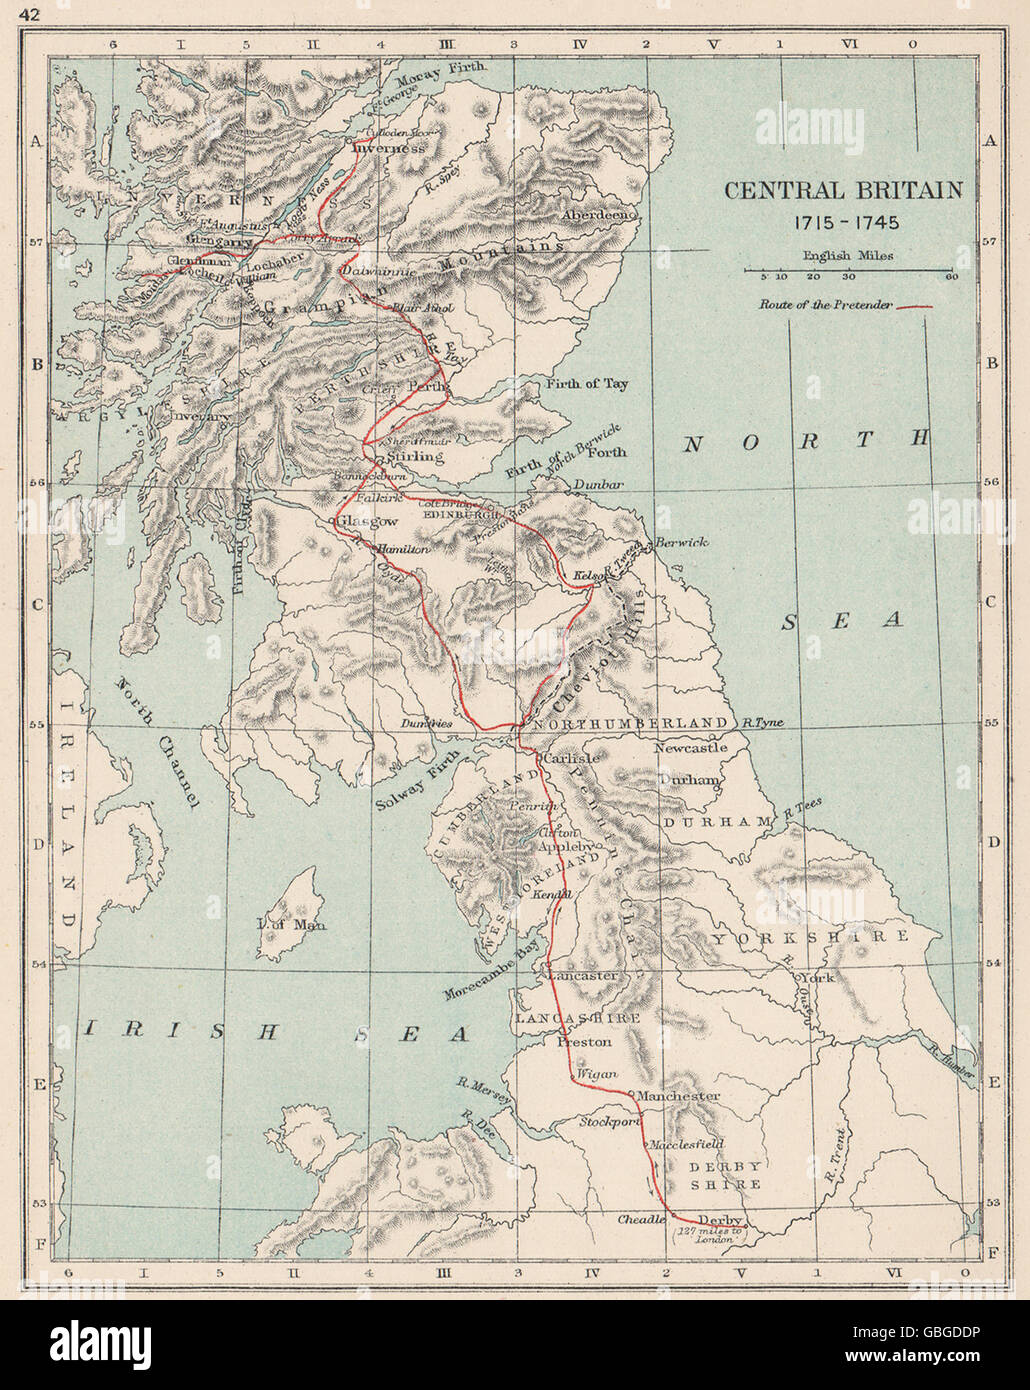 BONNIE PRINCE CHARLIE: 'Route of the (young) pretender' 1715-1745, 1907 map - Stock Image